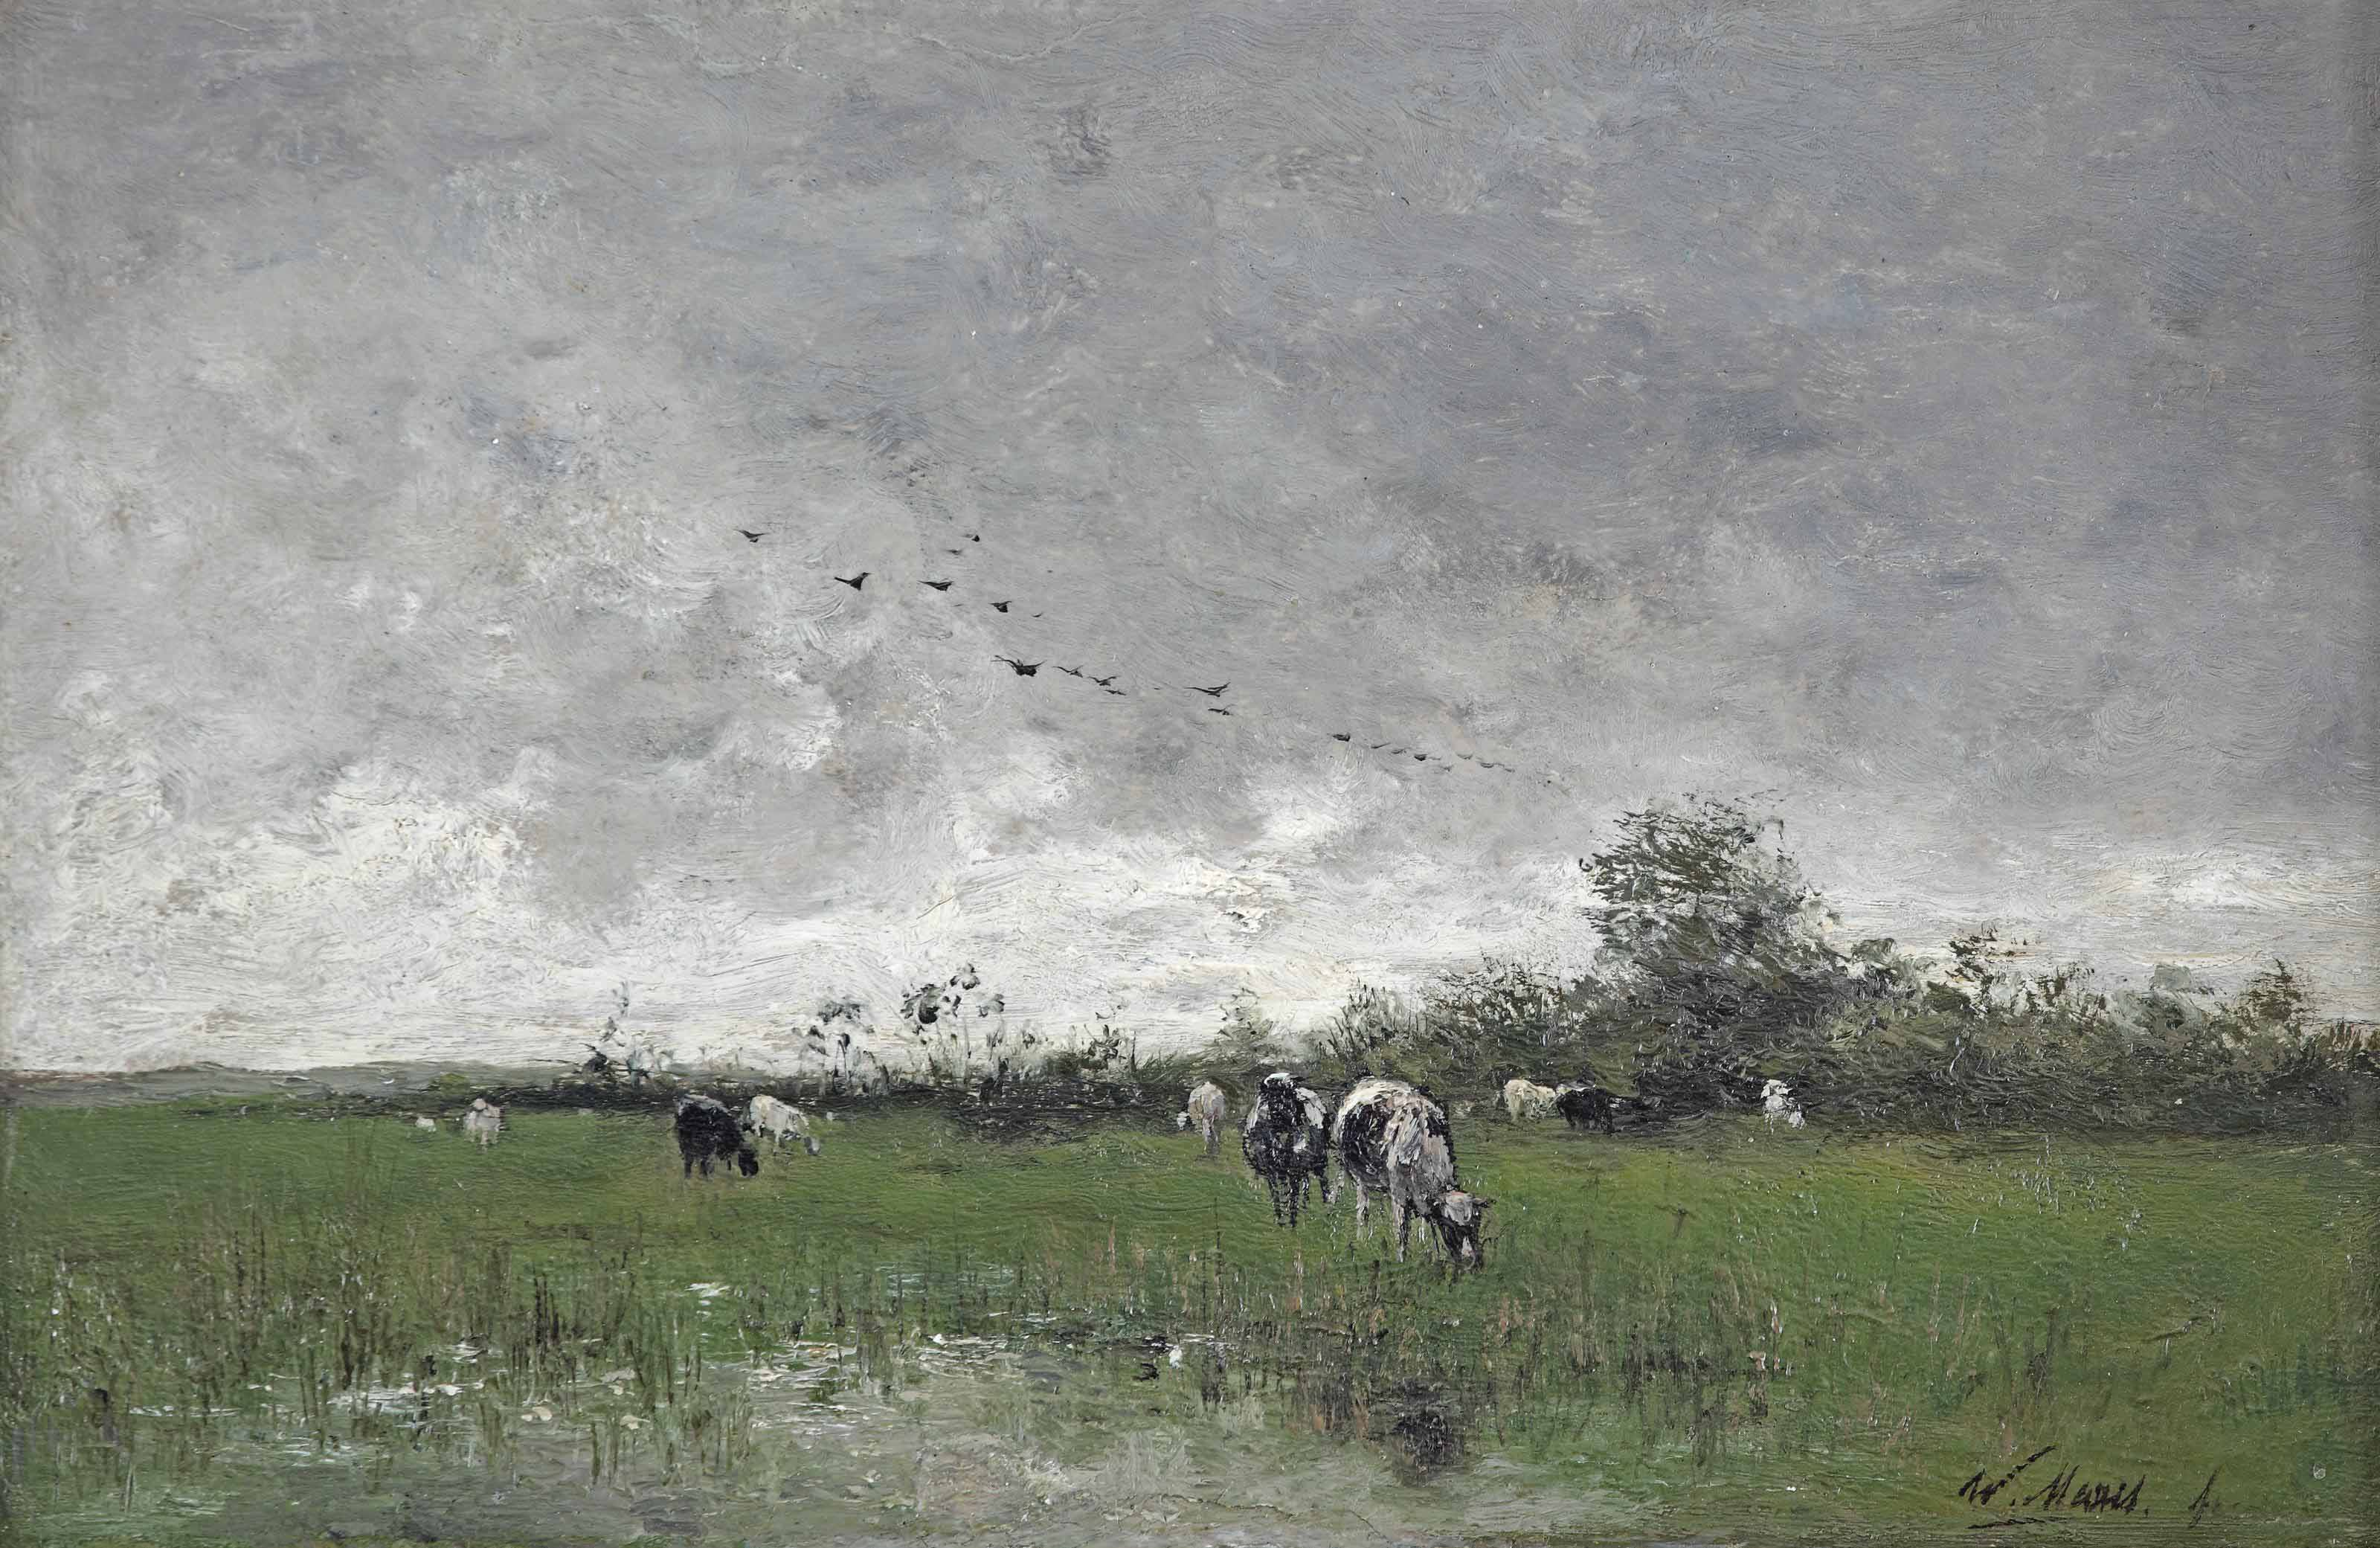 Cows grazing in the polder